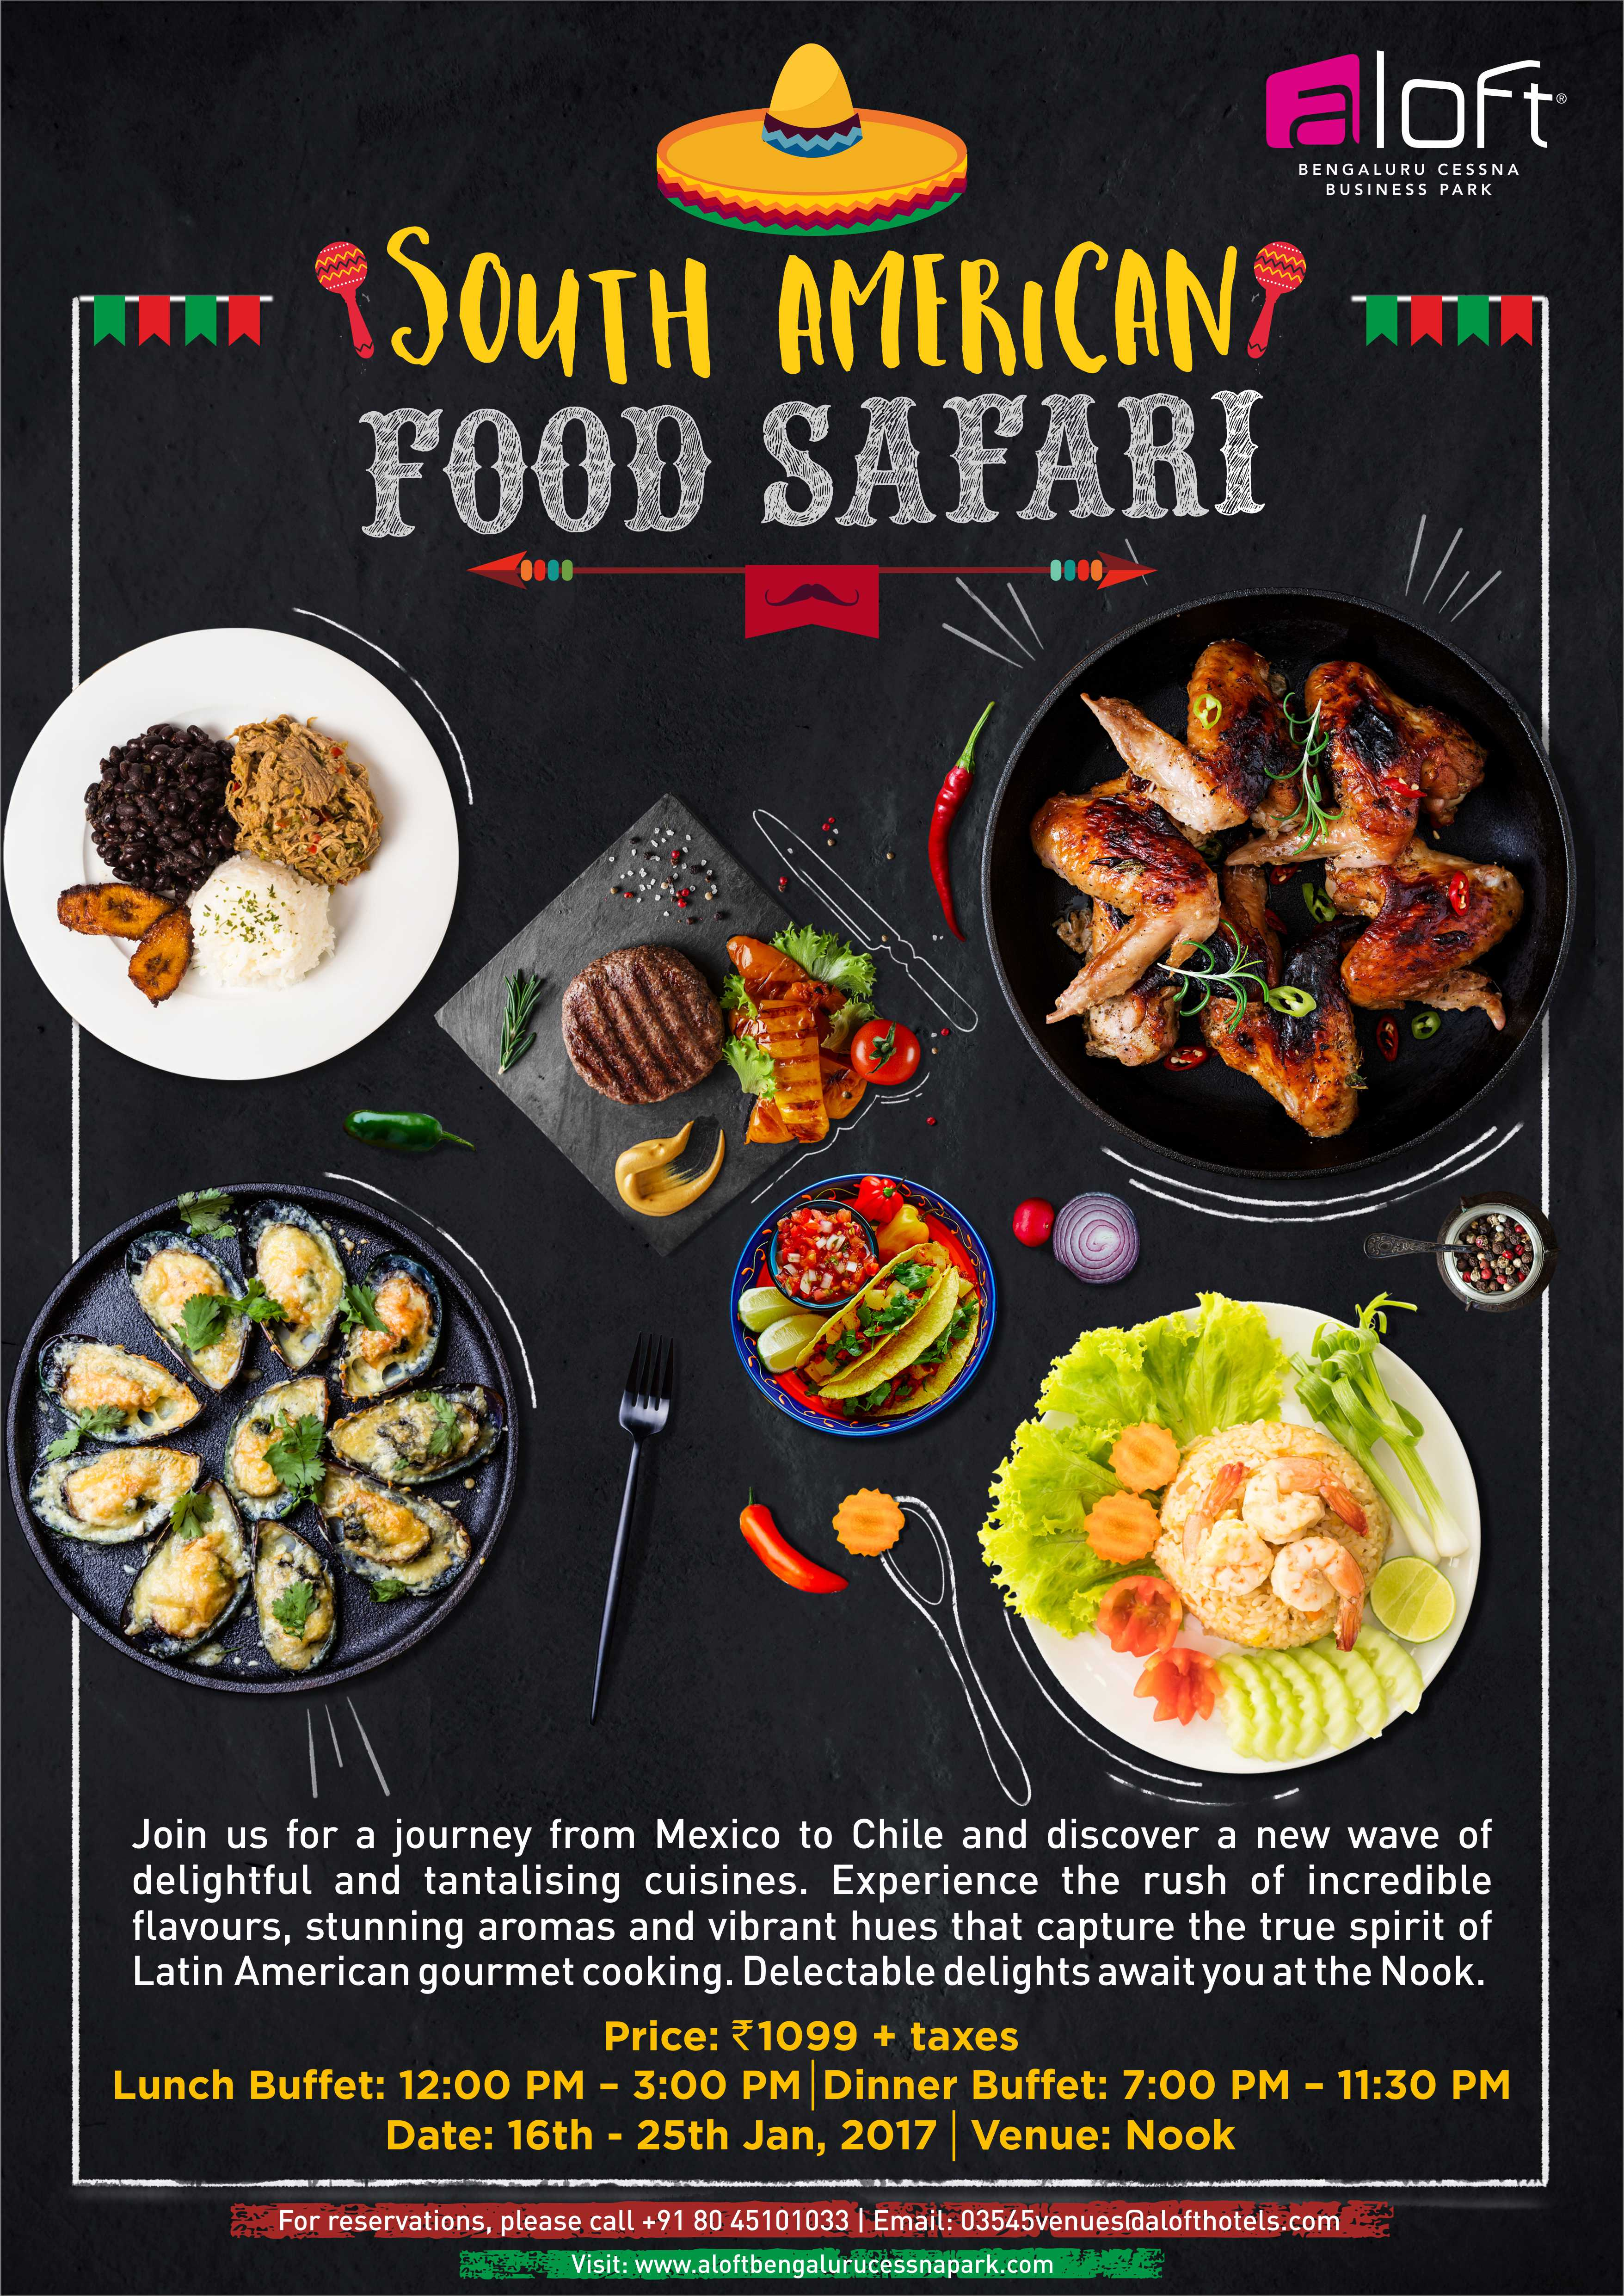 South american food safari at nook aloft bengaluru the foodie tales south america has been the the land of carnivals adventure and music and great culture the colombian salsa or the foot stepping brazilian samba forumfinder